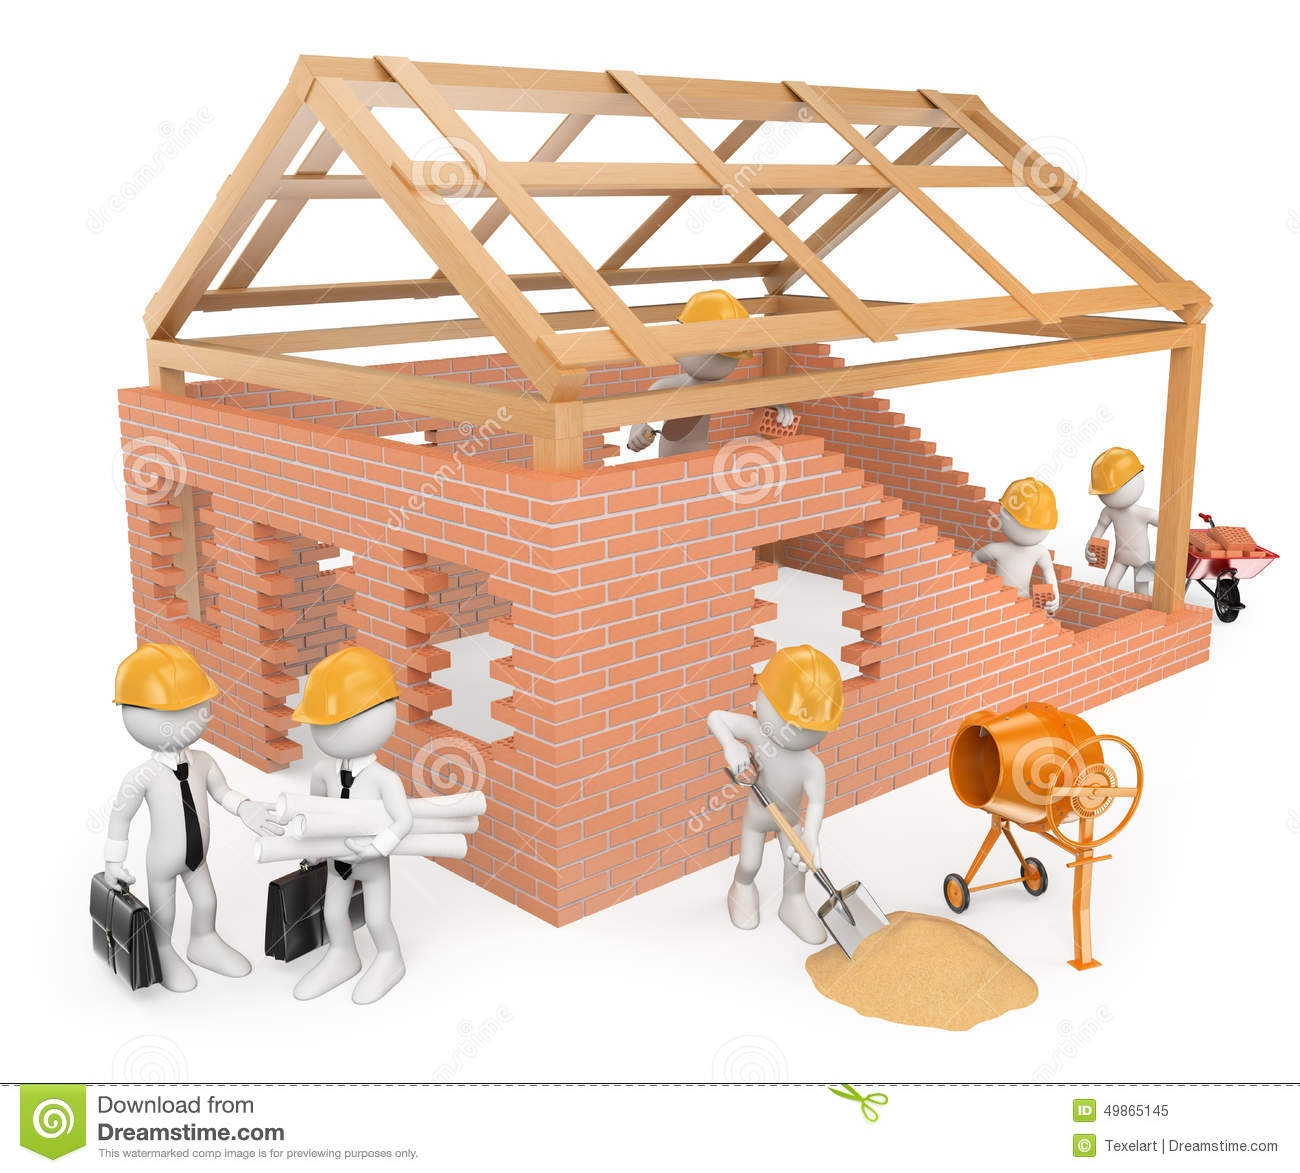 Clipart of teens building a house clipground for Build a house online free